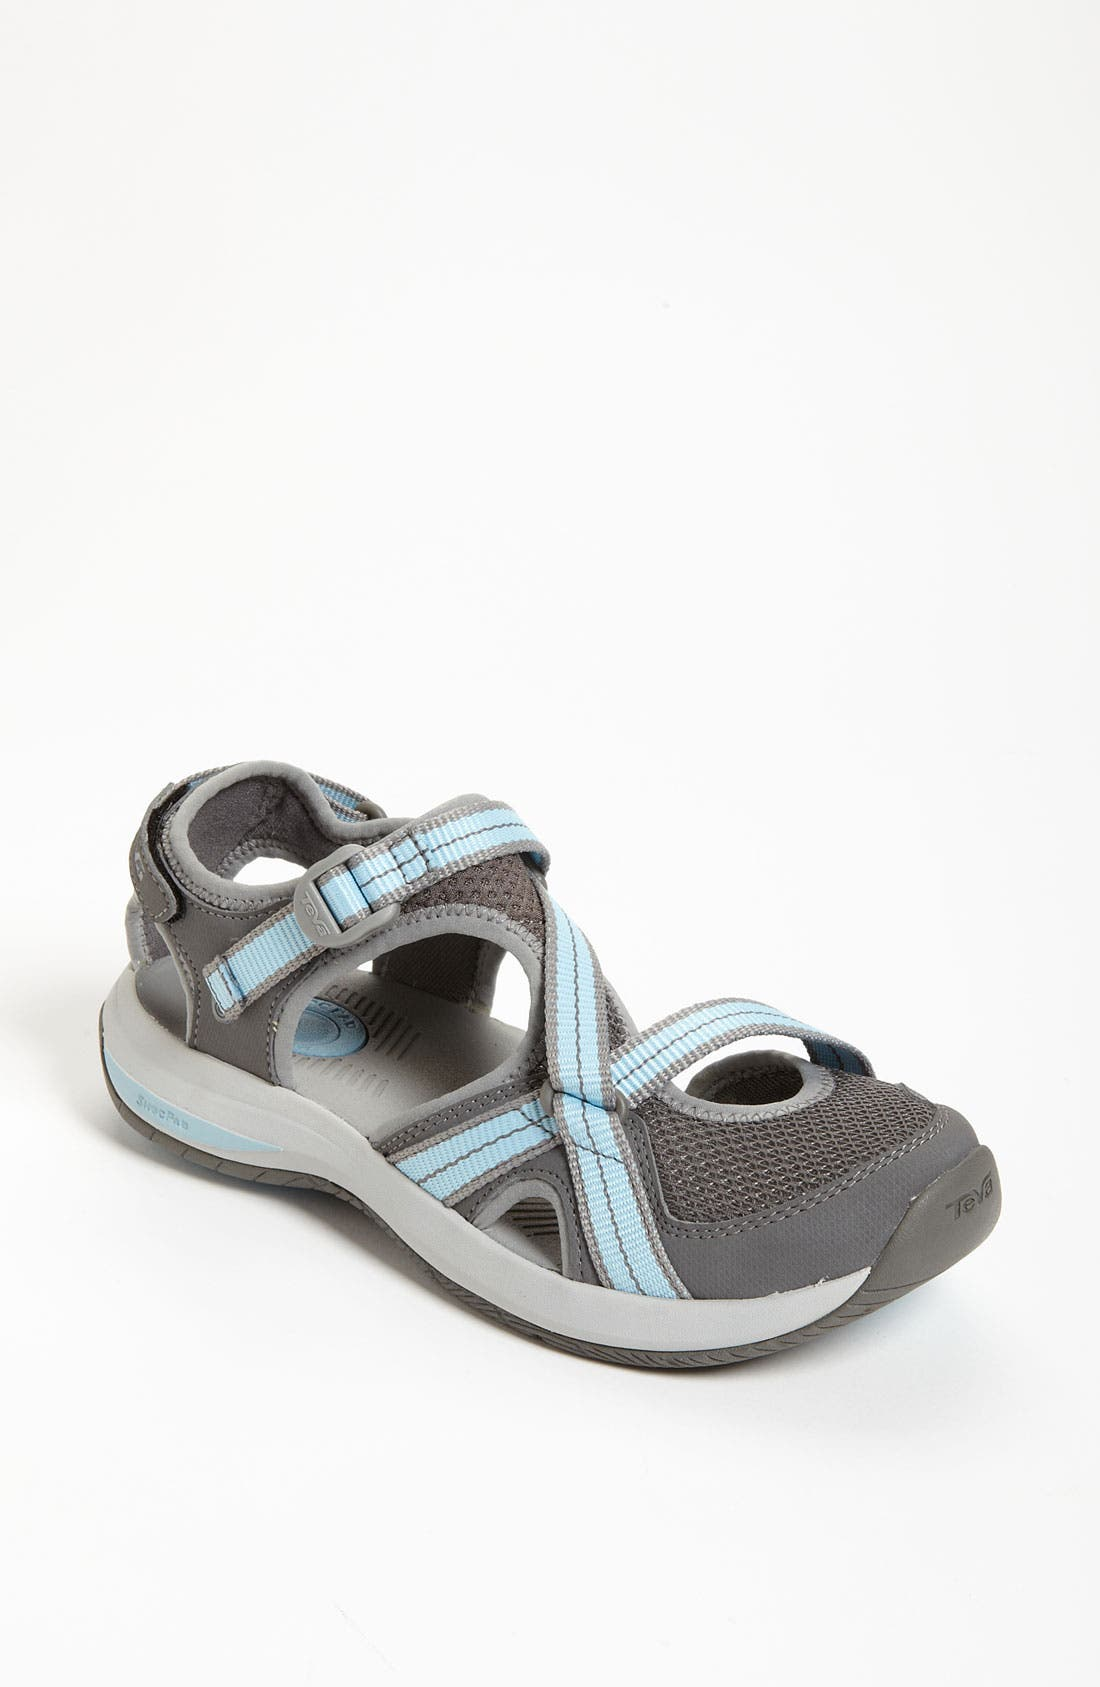 Alternate Image 1 Selected - Teva 'Ewaso' Water Sandal